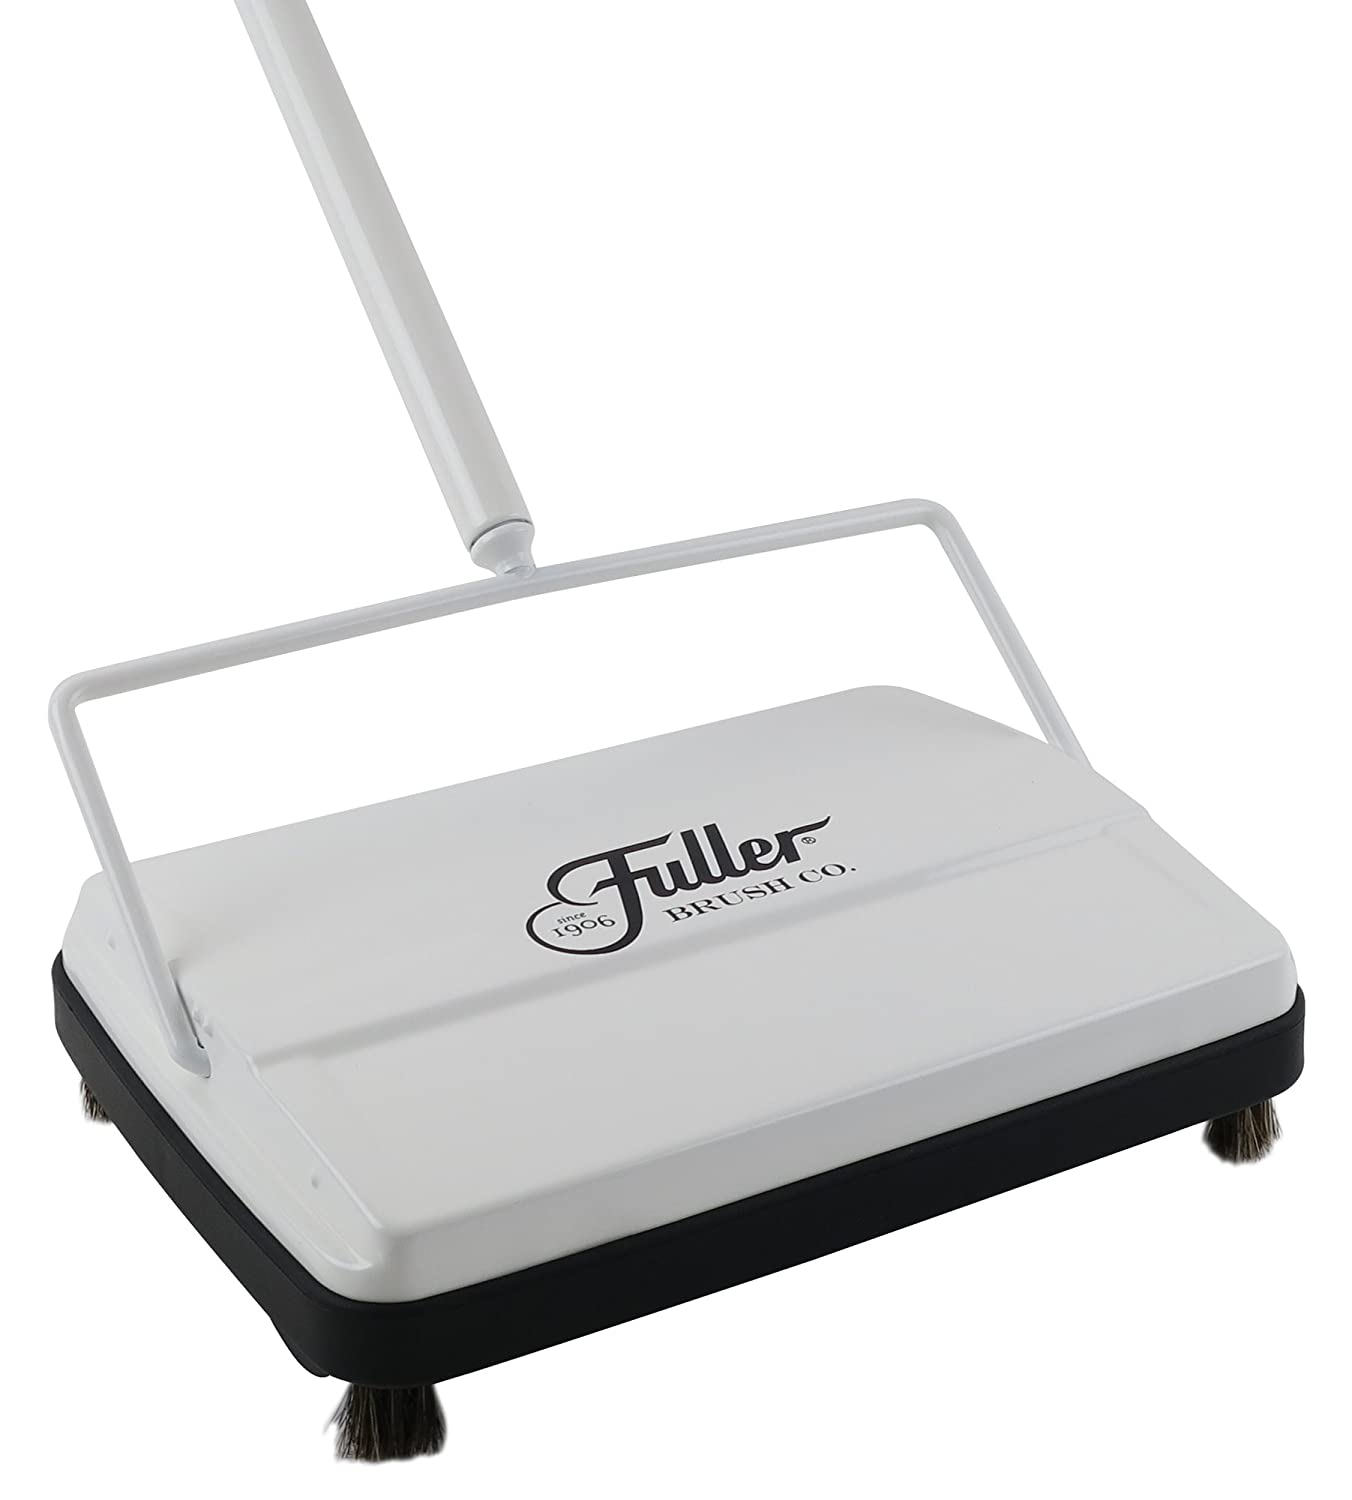 "Fuller Brush Electrostatic Carpet & Floor Sweeper - 9"" Cleaning Path - Bright White"